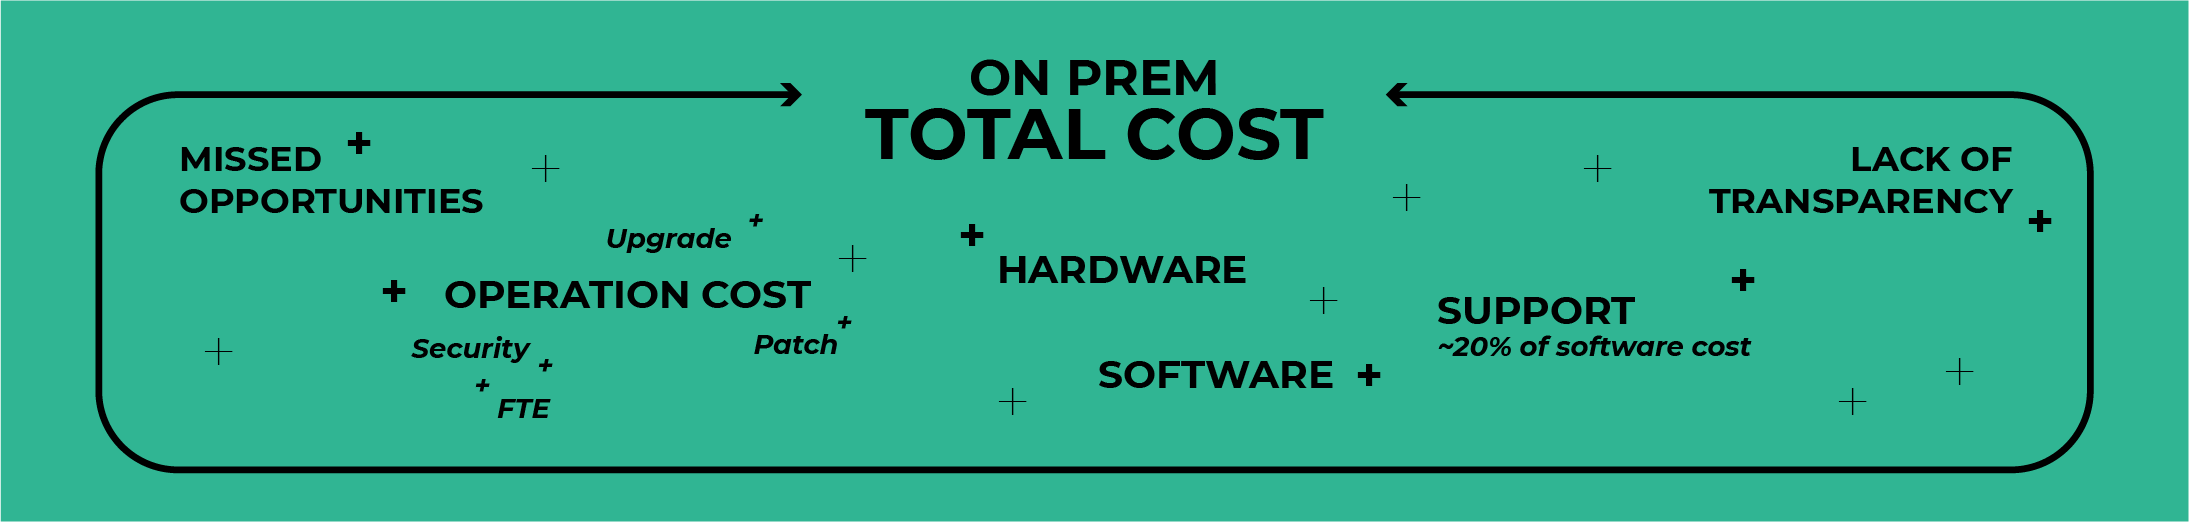 cost of on-prem solutions